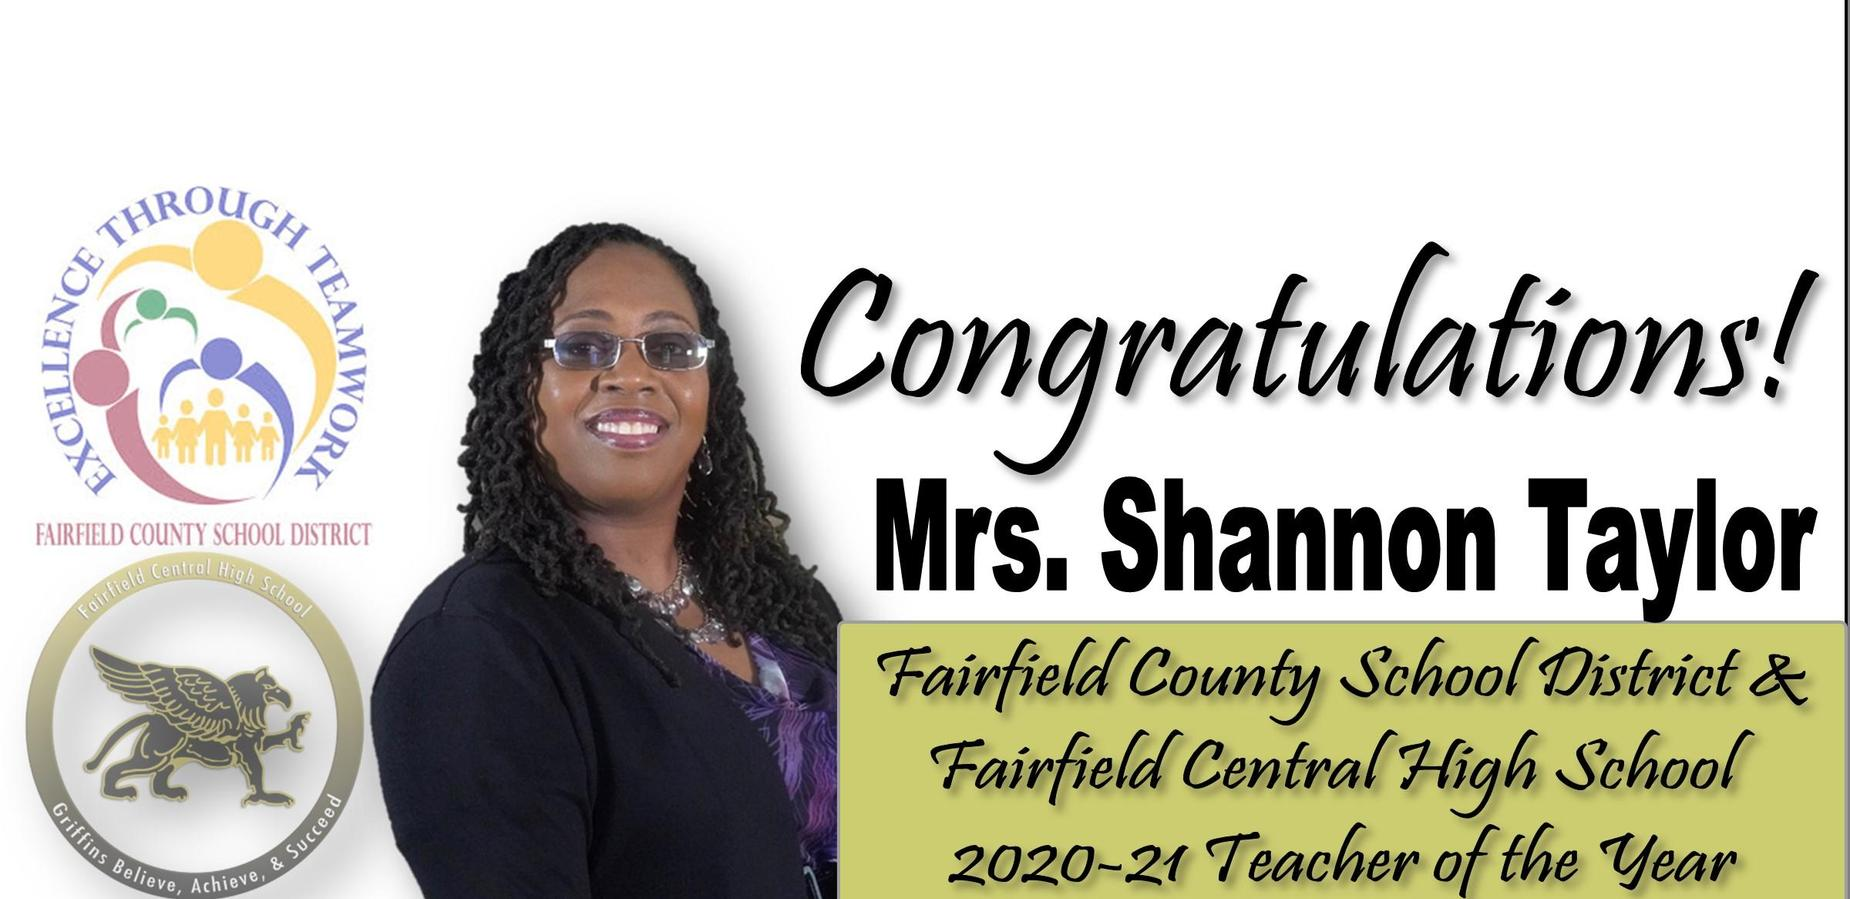 Congratulations Mrs. Shannon Taylor FCSD & FCHS 2020-21 Teacher of the Year